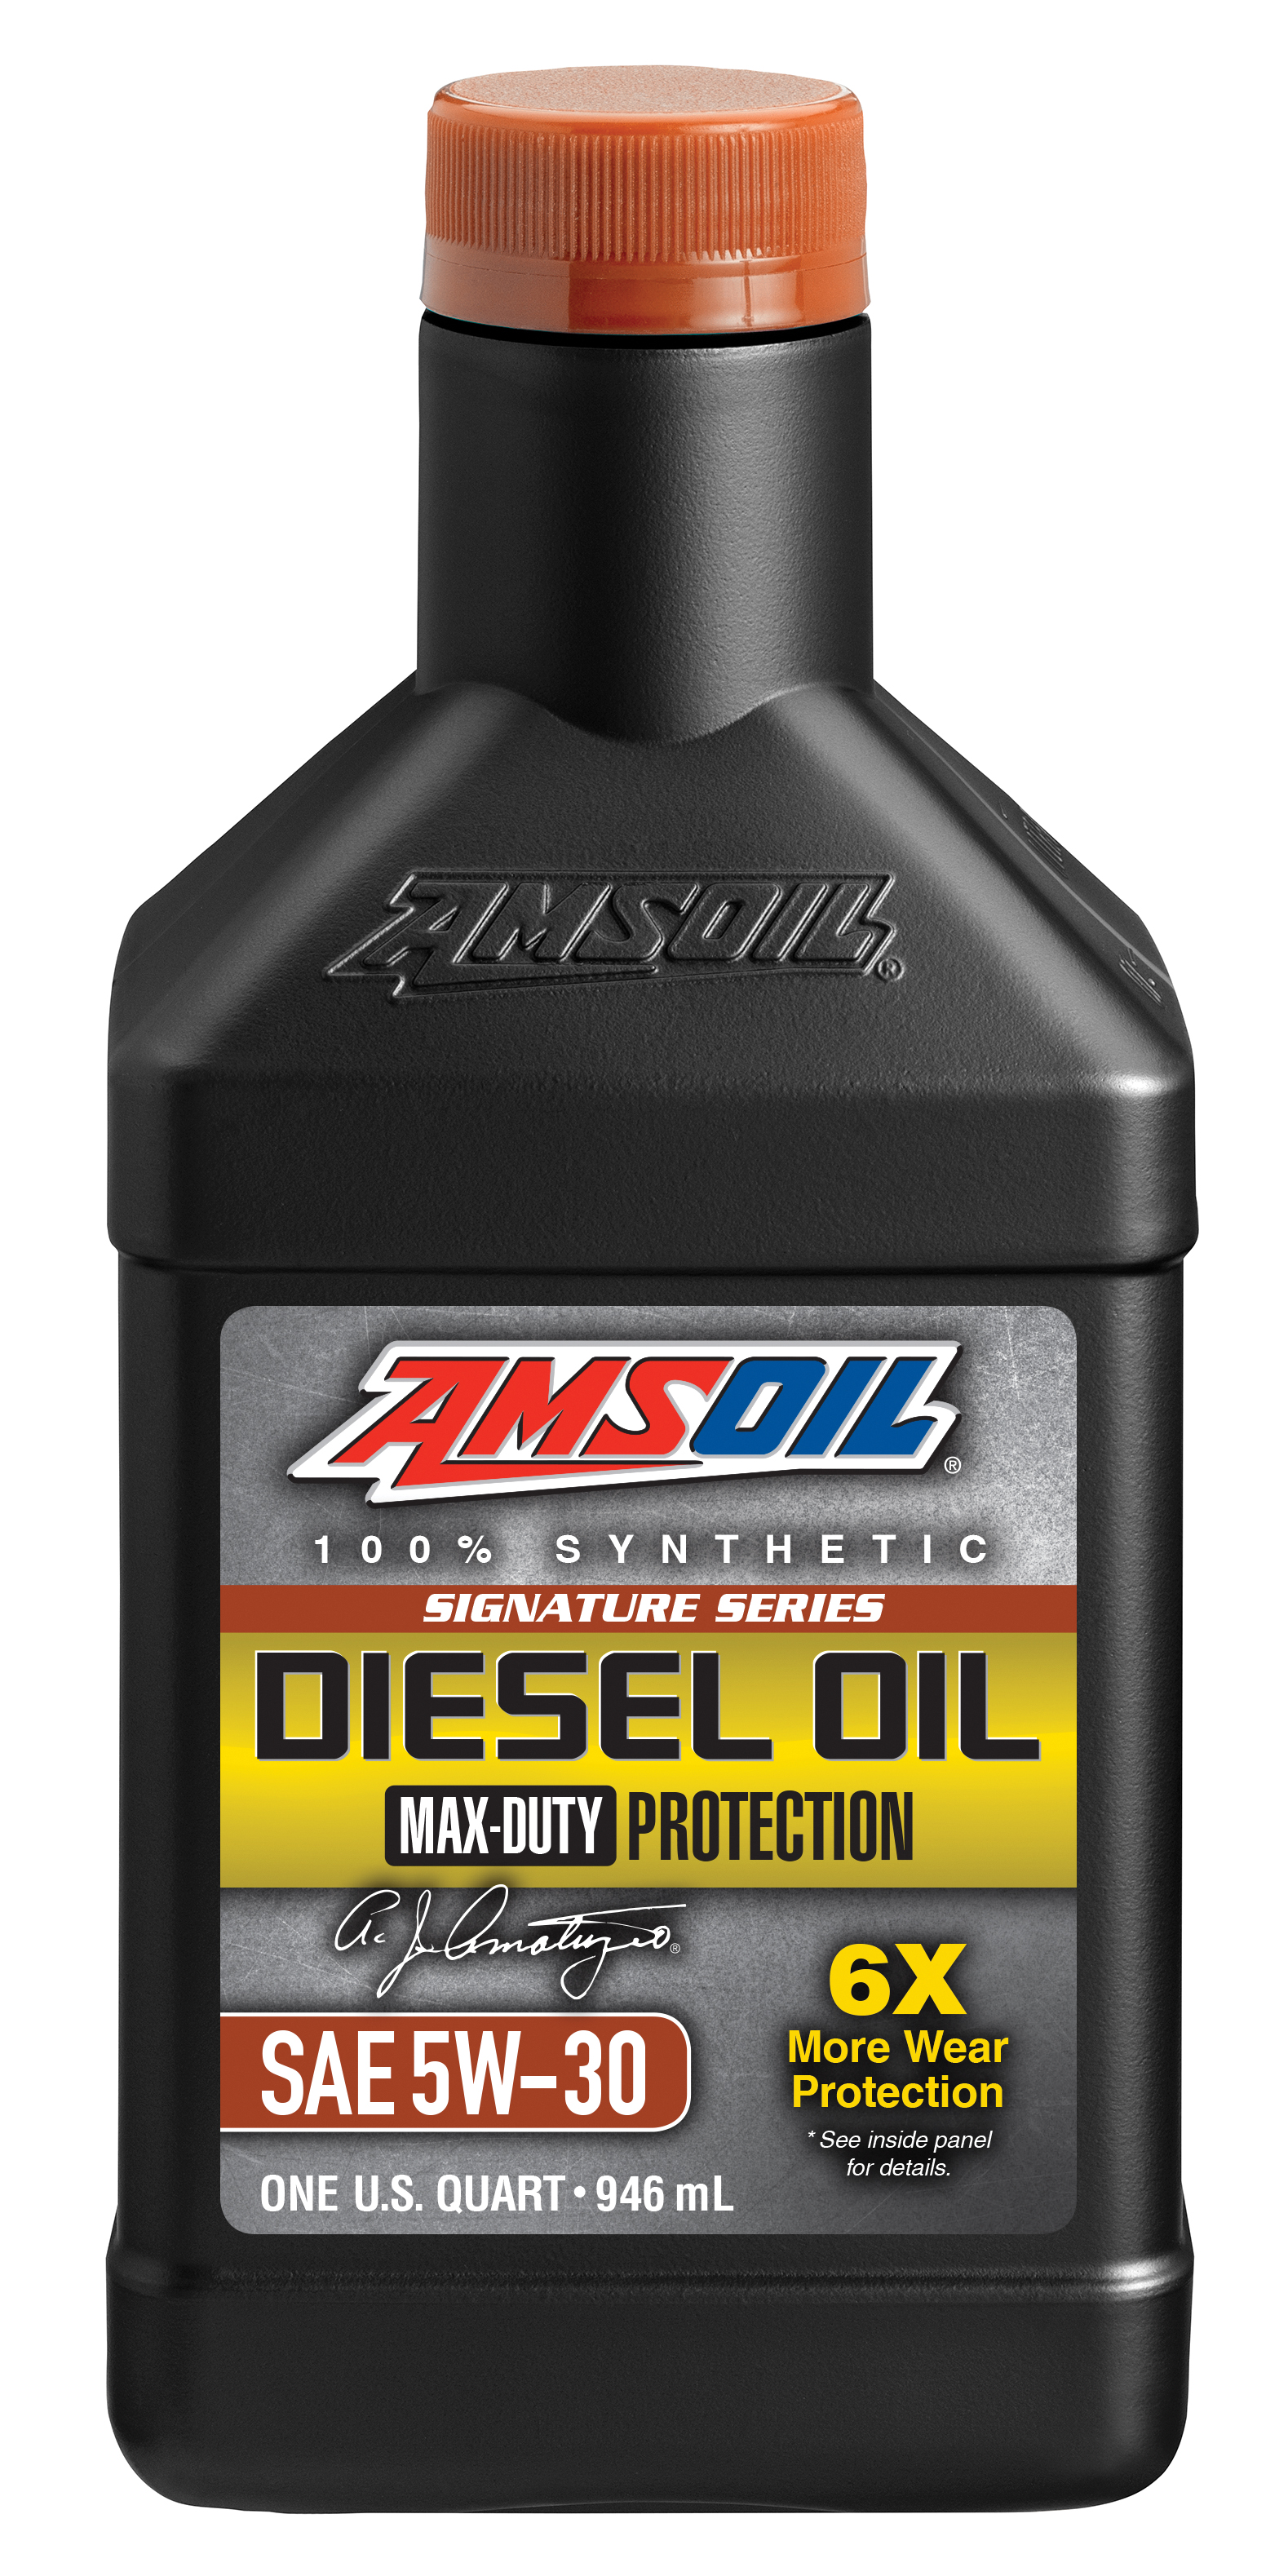 Amsoil diesel engine oil best oil company for Amsoil 5w30 signature series 100 synthetic motor oil